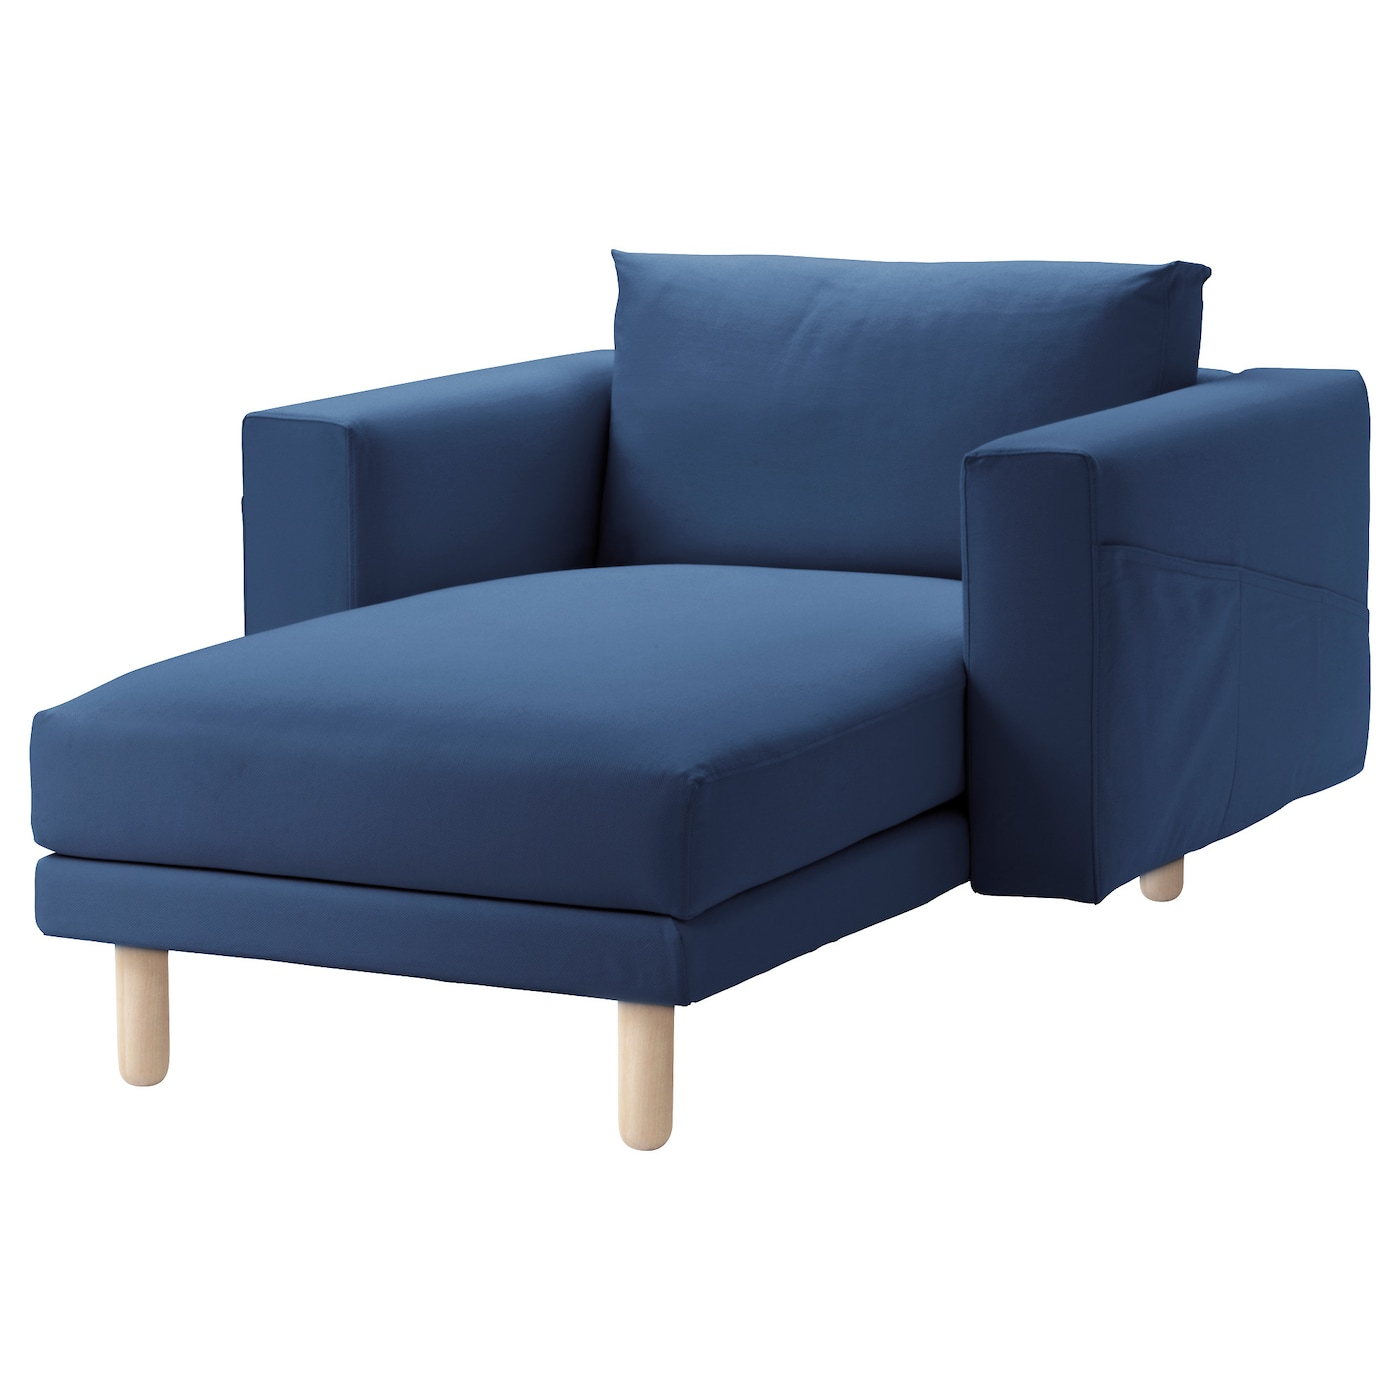 Norsborg chaise longue gr sbo dark blue birch ikea for Chaise longue jardin ikea